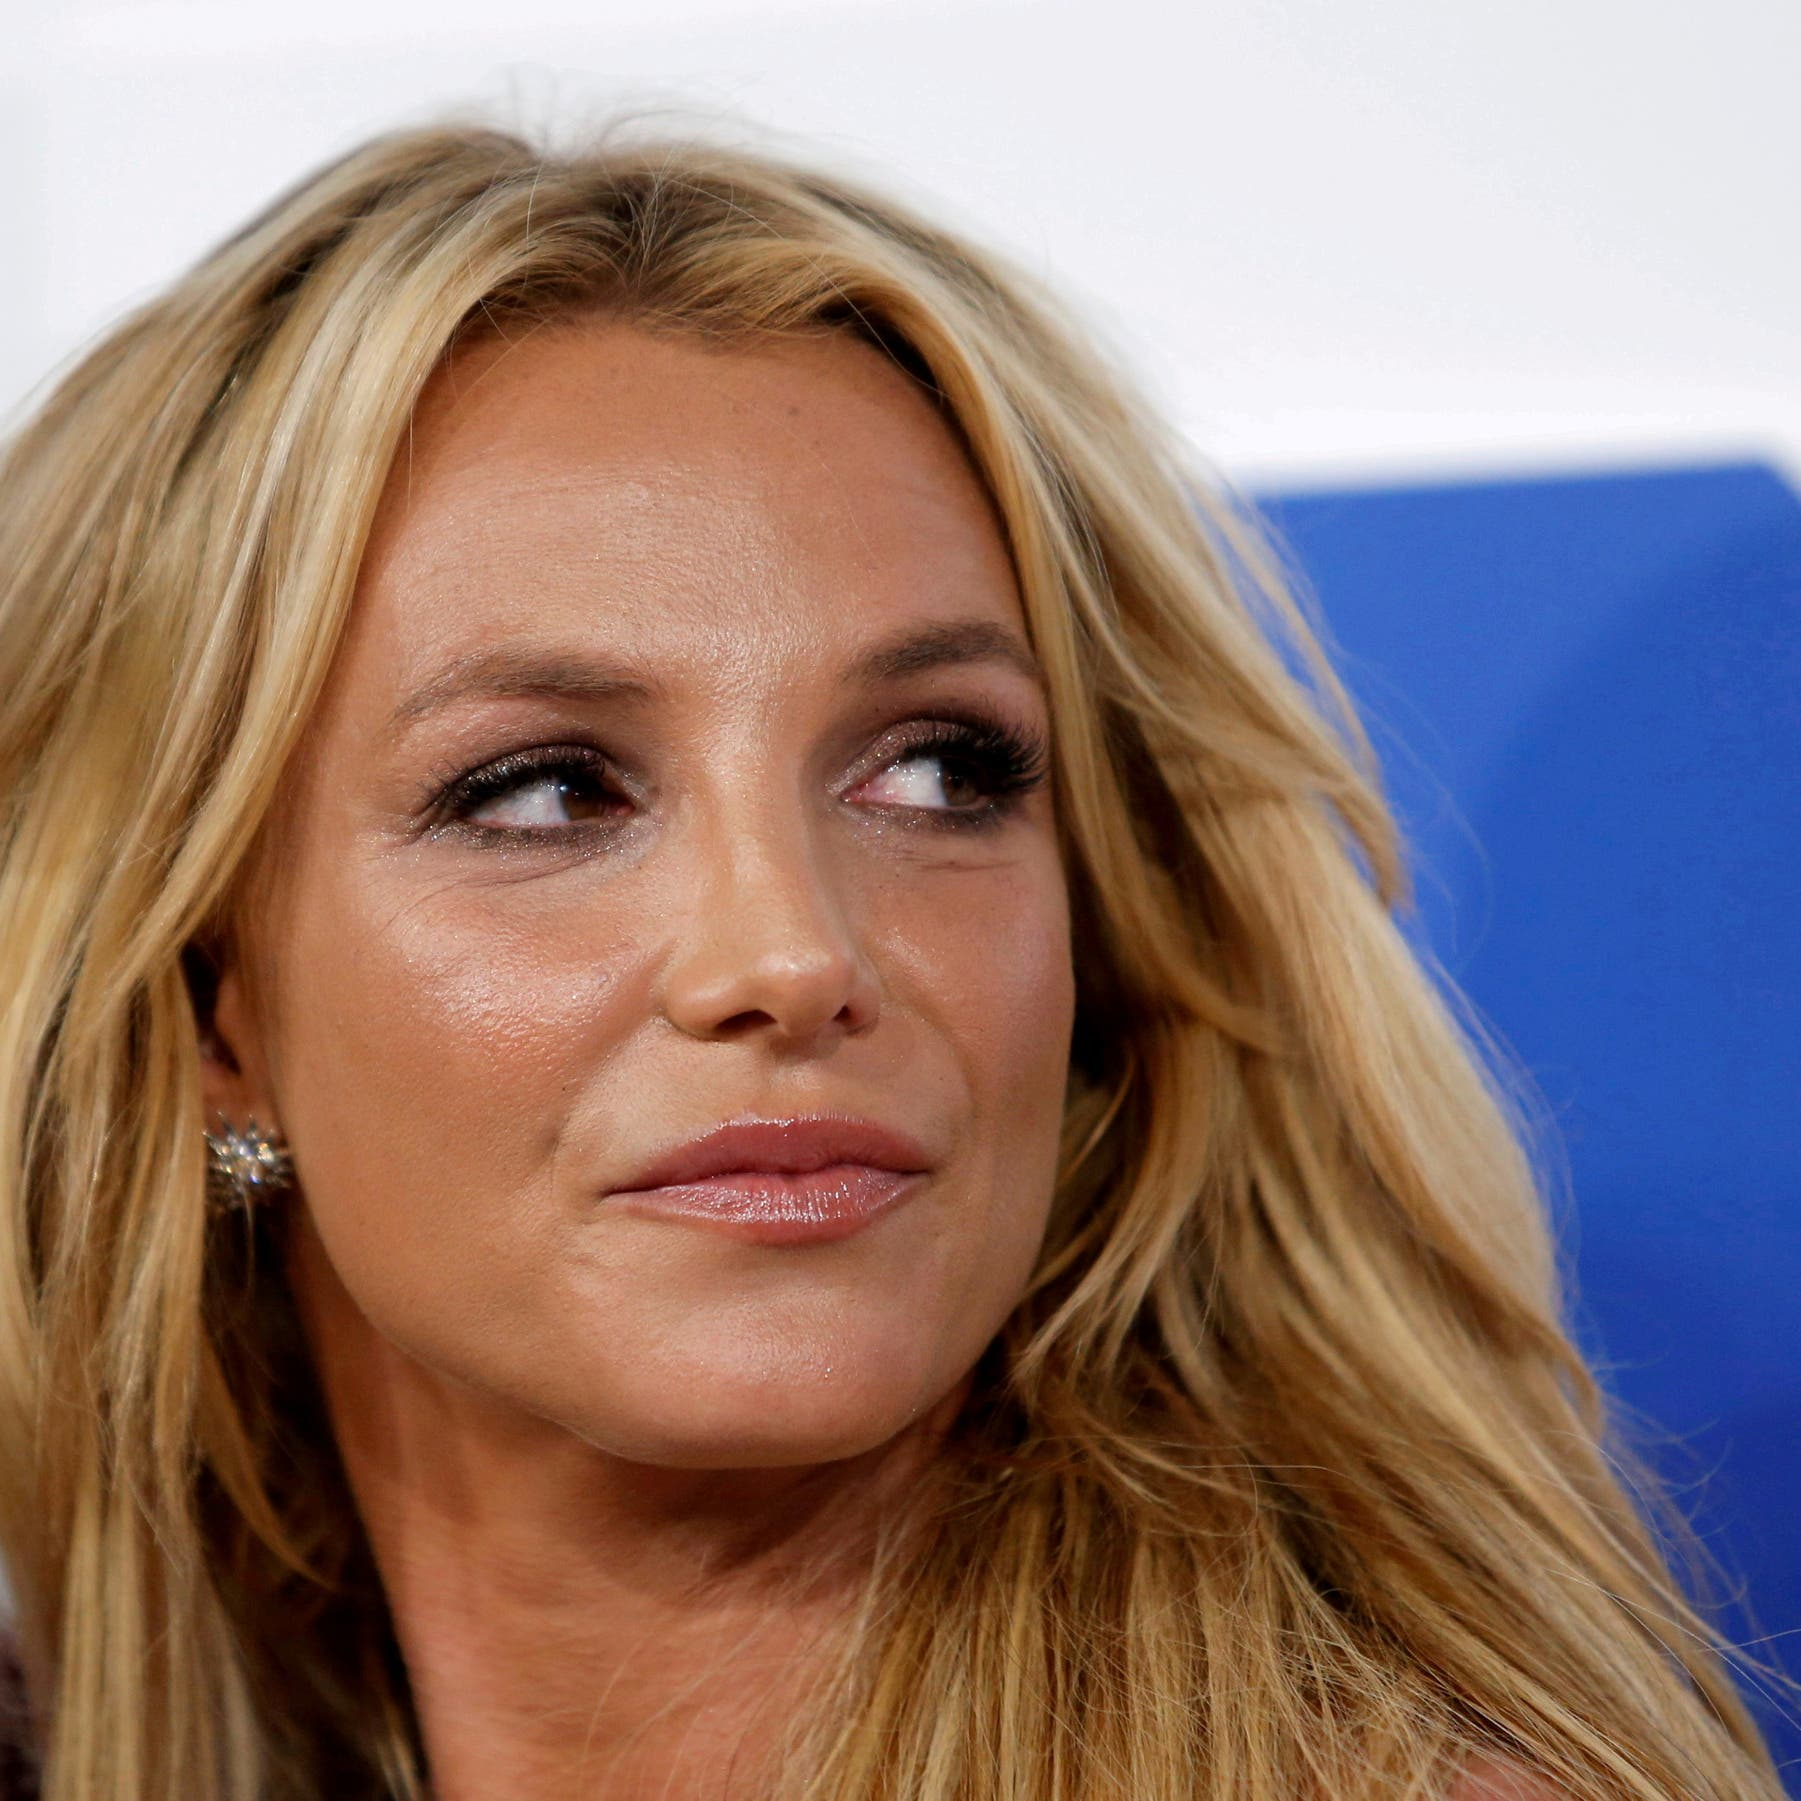 'I quit!' says Britney Spears in new, furious Instagram post, slams conservatorship